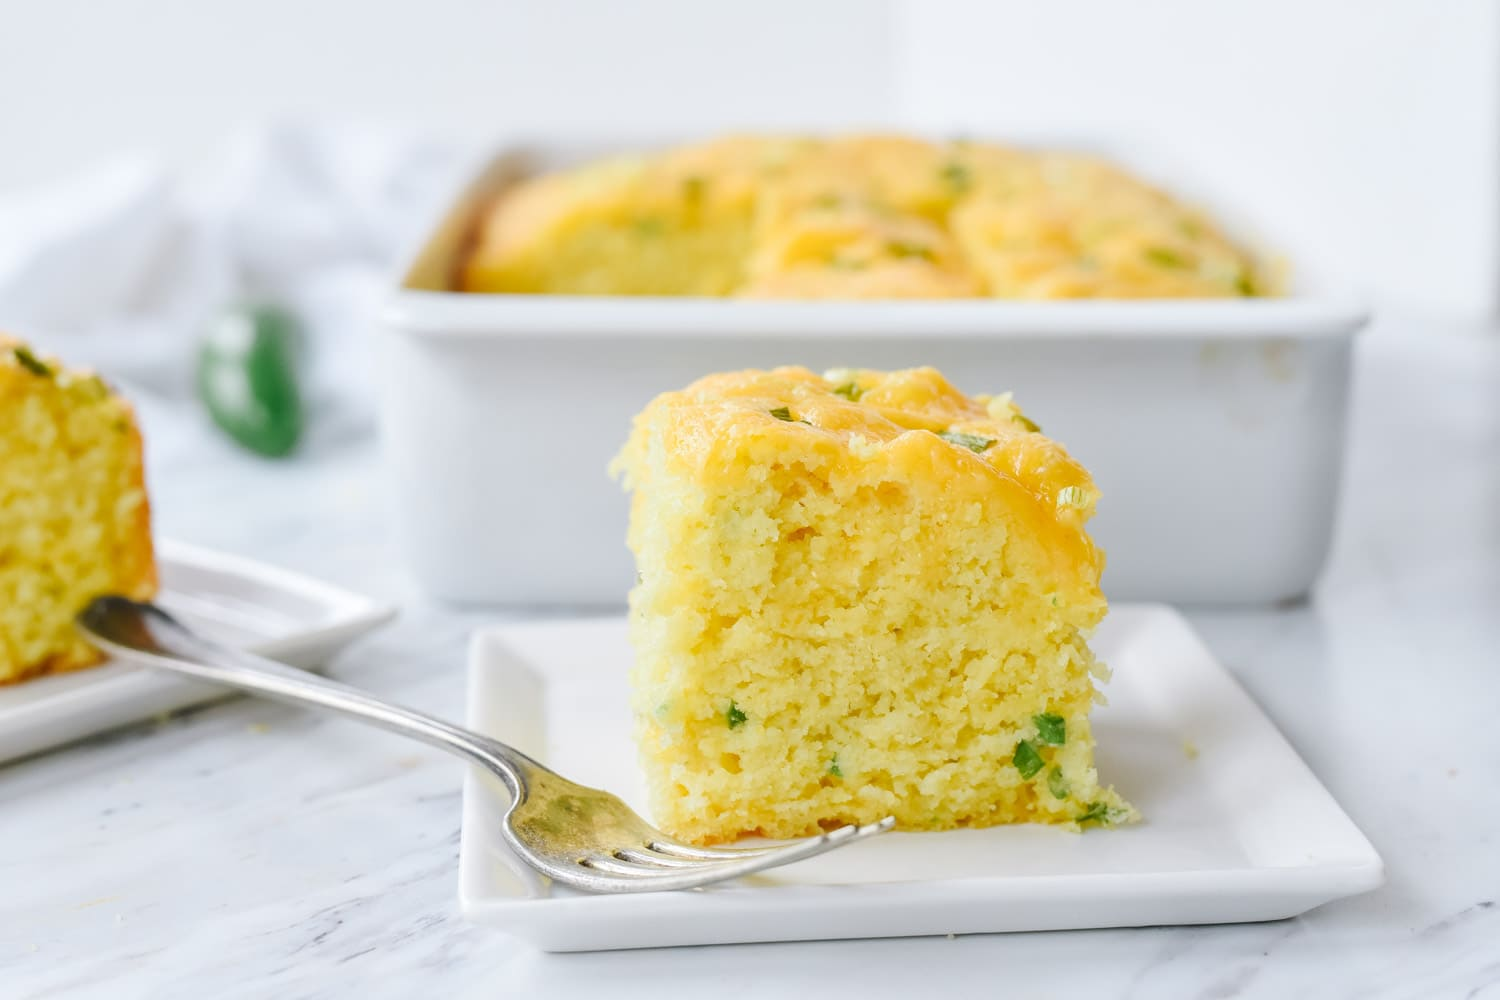 slice of jalapeno cornbread on a white plate.